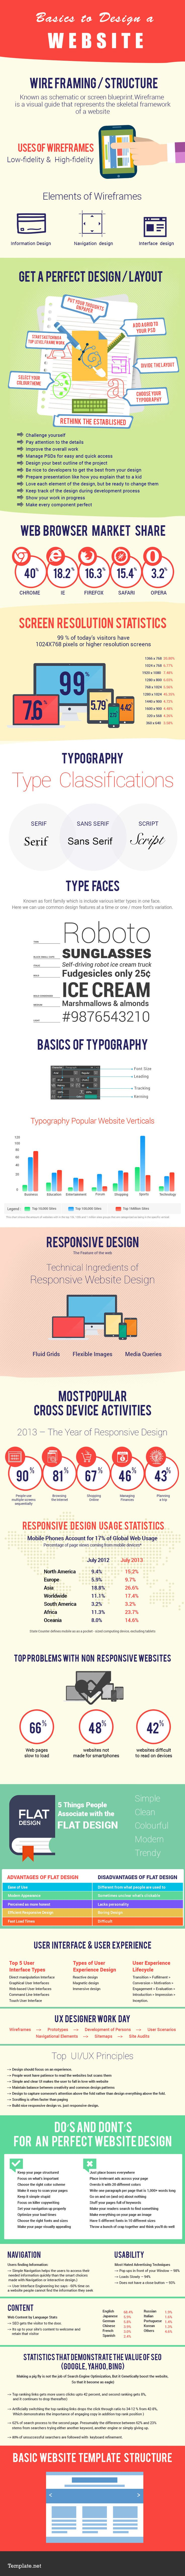 Basics to Design a Website Infogrpahic-final #WebDesign Your Website Like a CRO: The Anatomy of a Successful #Website #infographic http://blog.crazyegg.com/2015/01/14/design-your-website/ via @CrazyEgg